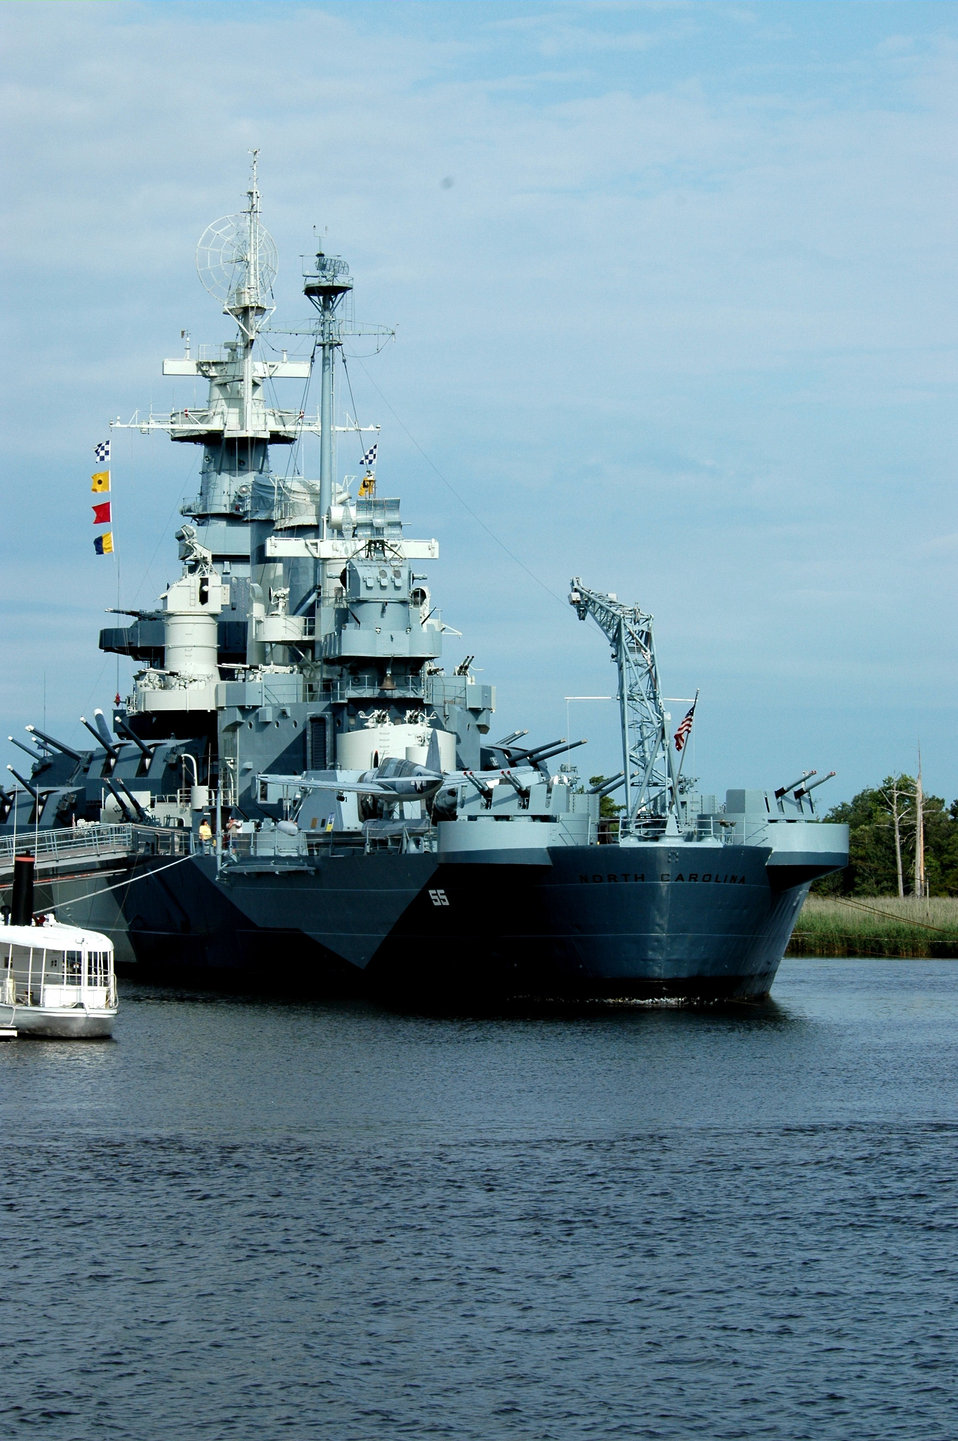 Battleship NORTH CAROLINA (BB55), a World War II era battleship that saw many heroic actions. The ship was decommissioned in 1947 and brought to Wilmington in 1961.